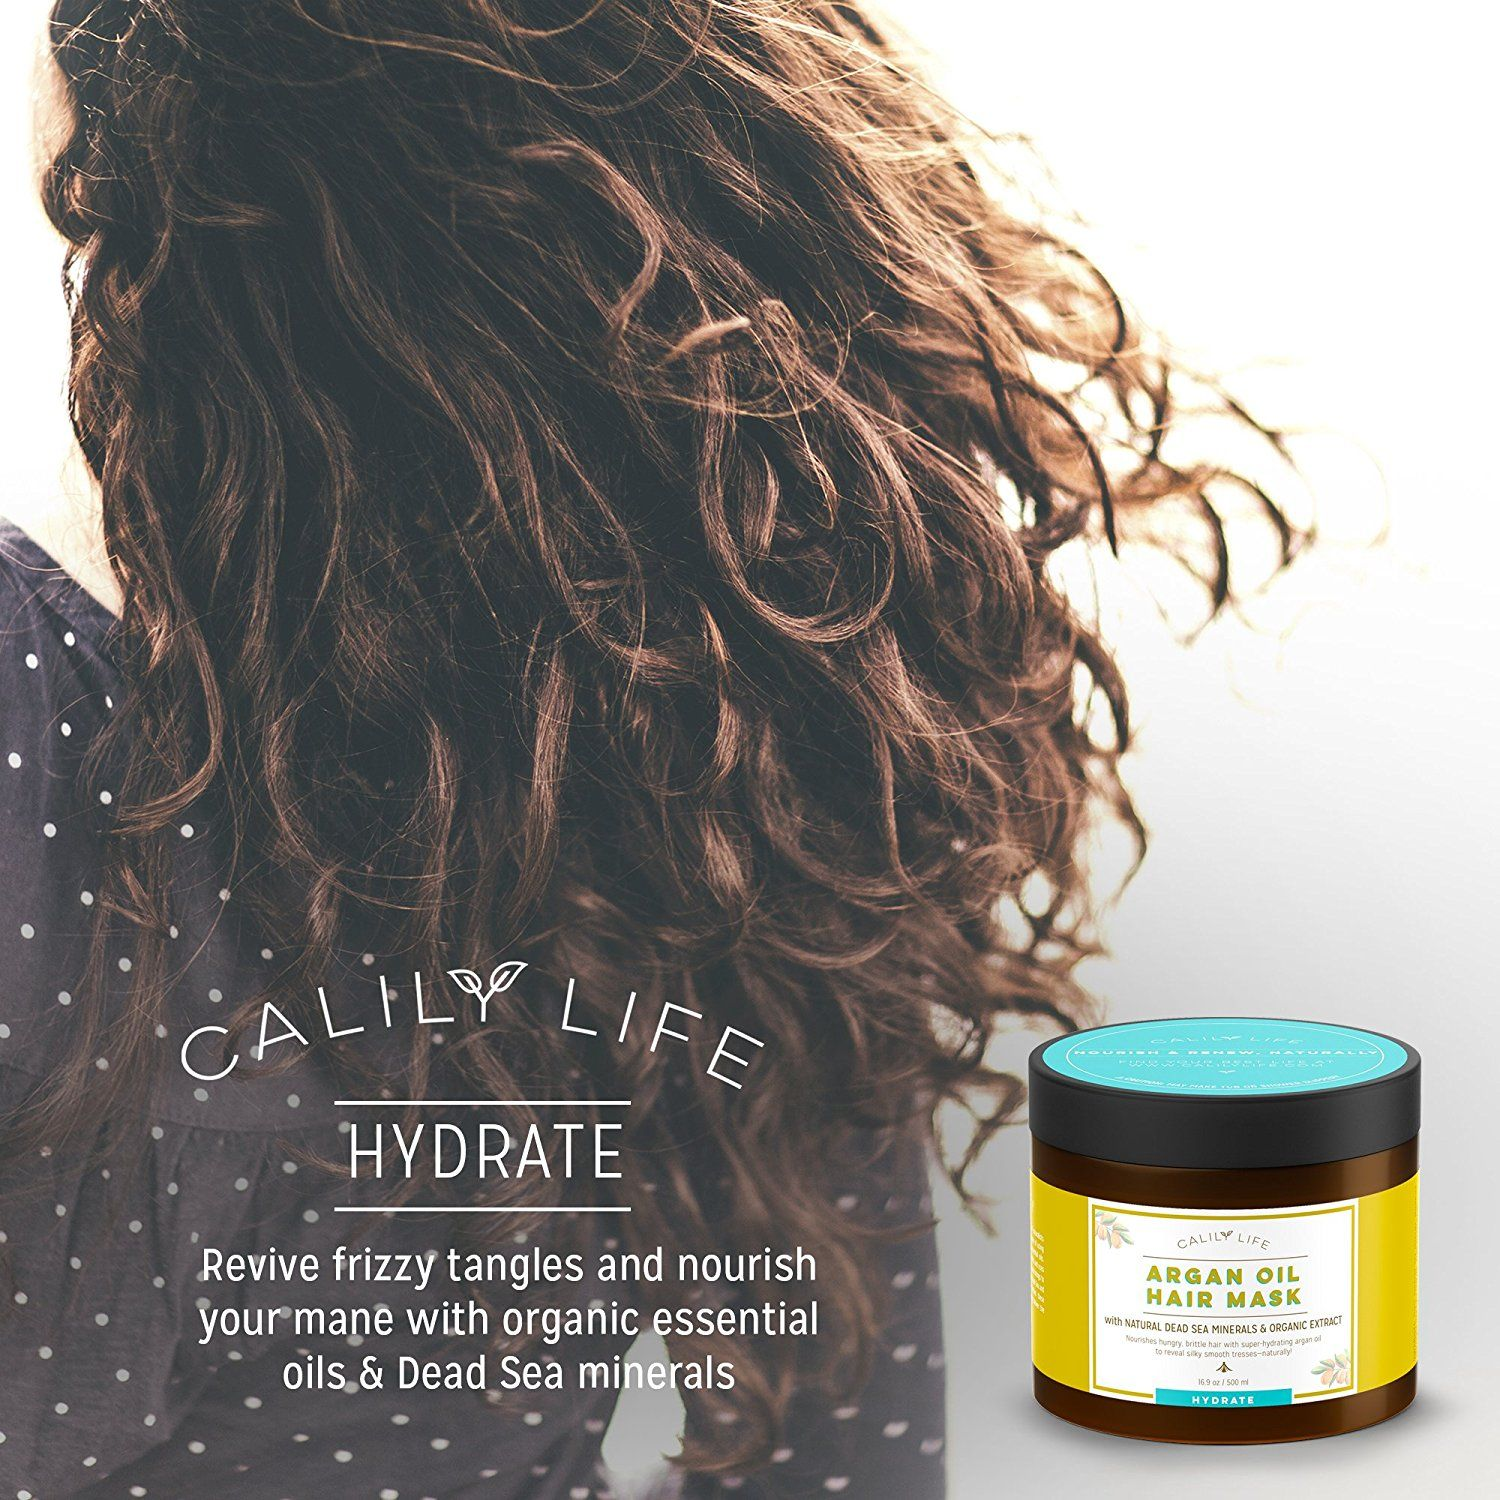 Calily life organic moroccan argan oil hair mask with dead